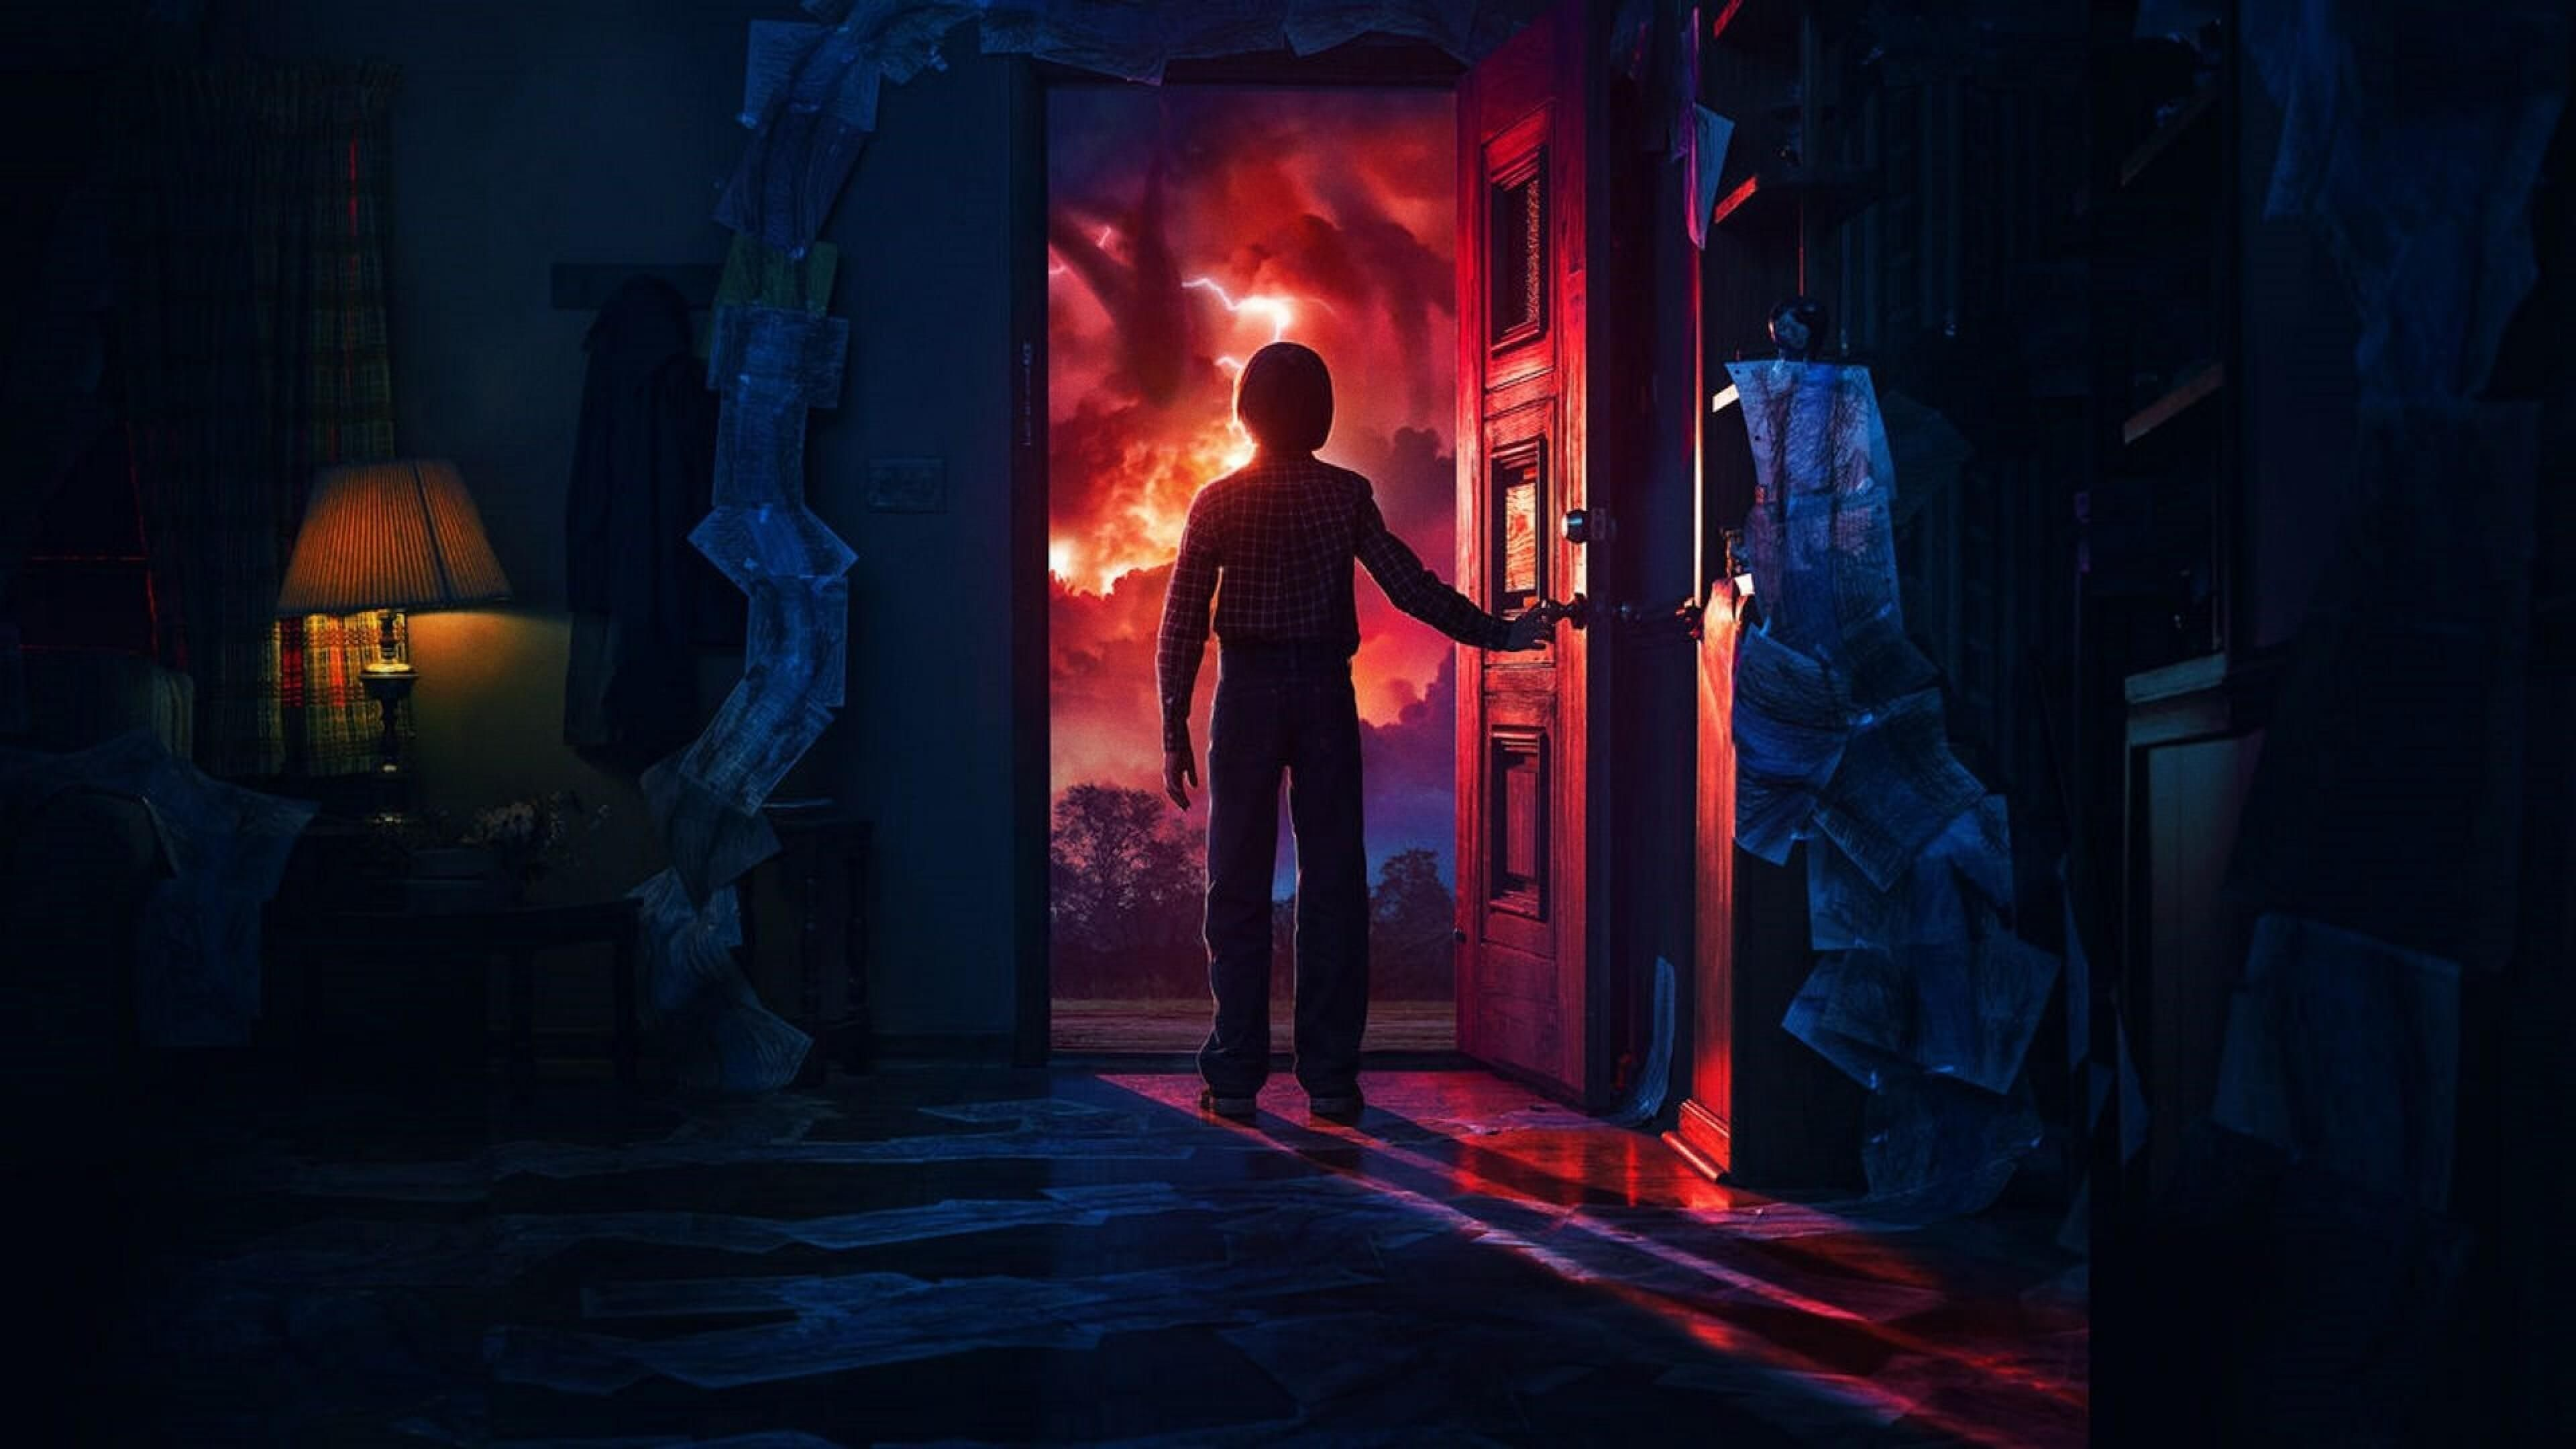 Free Stranger Things Wallpaper for iPhone 4K HD Stranger